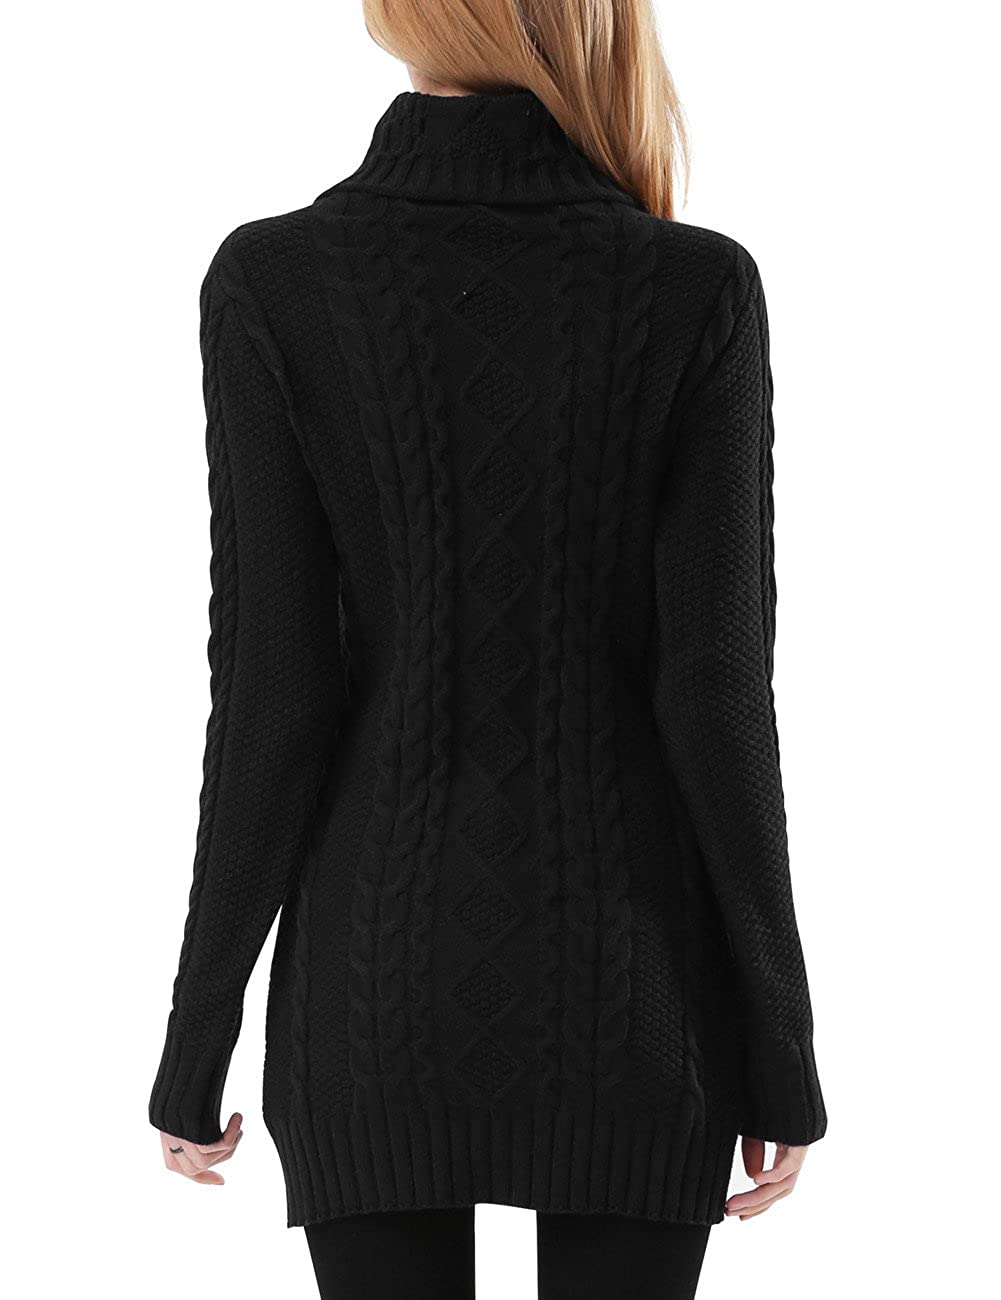 c8c327726 Rocorose Women s Turtleneck Long Sleeves Cable Knit Long Sweater at ...